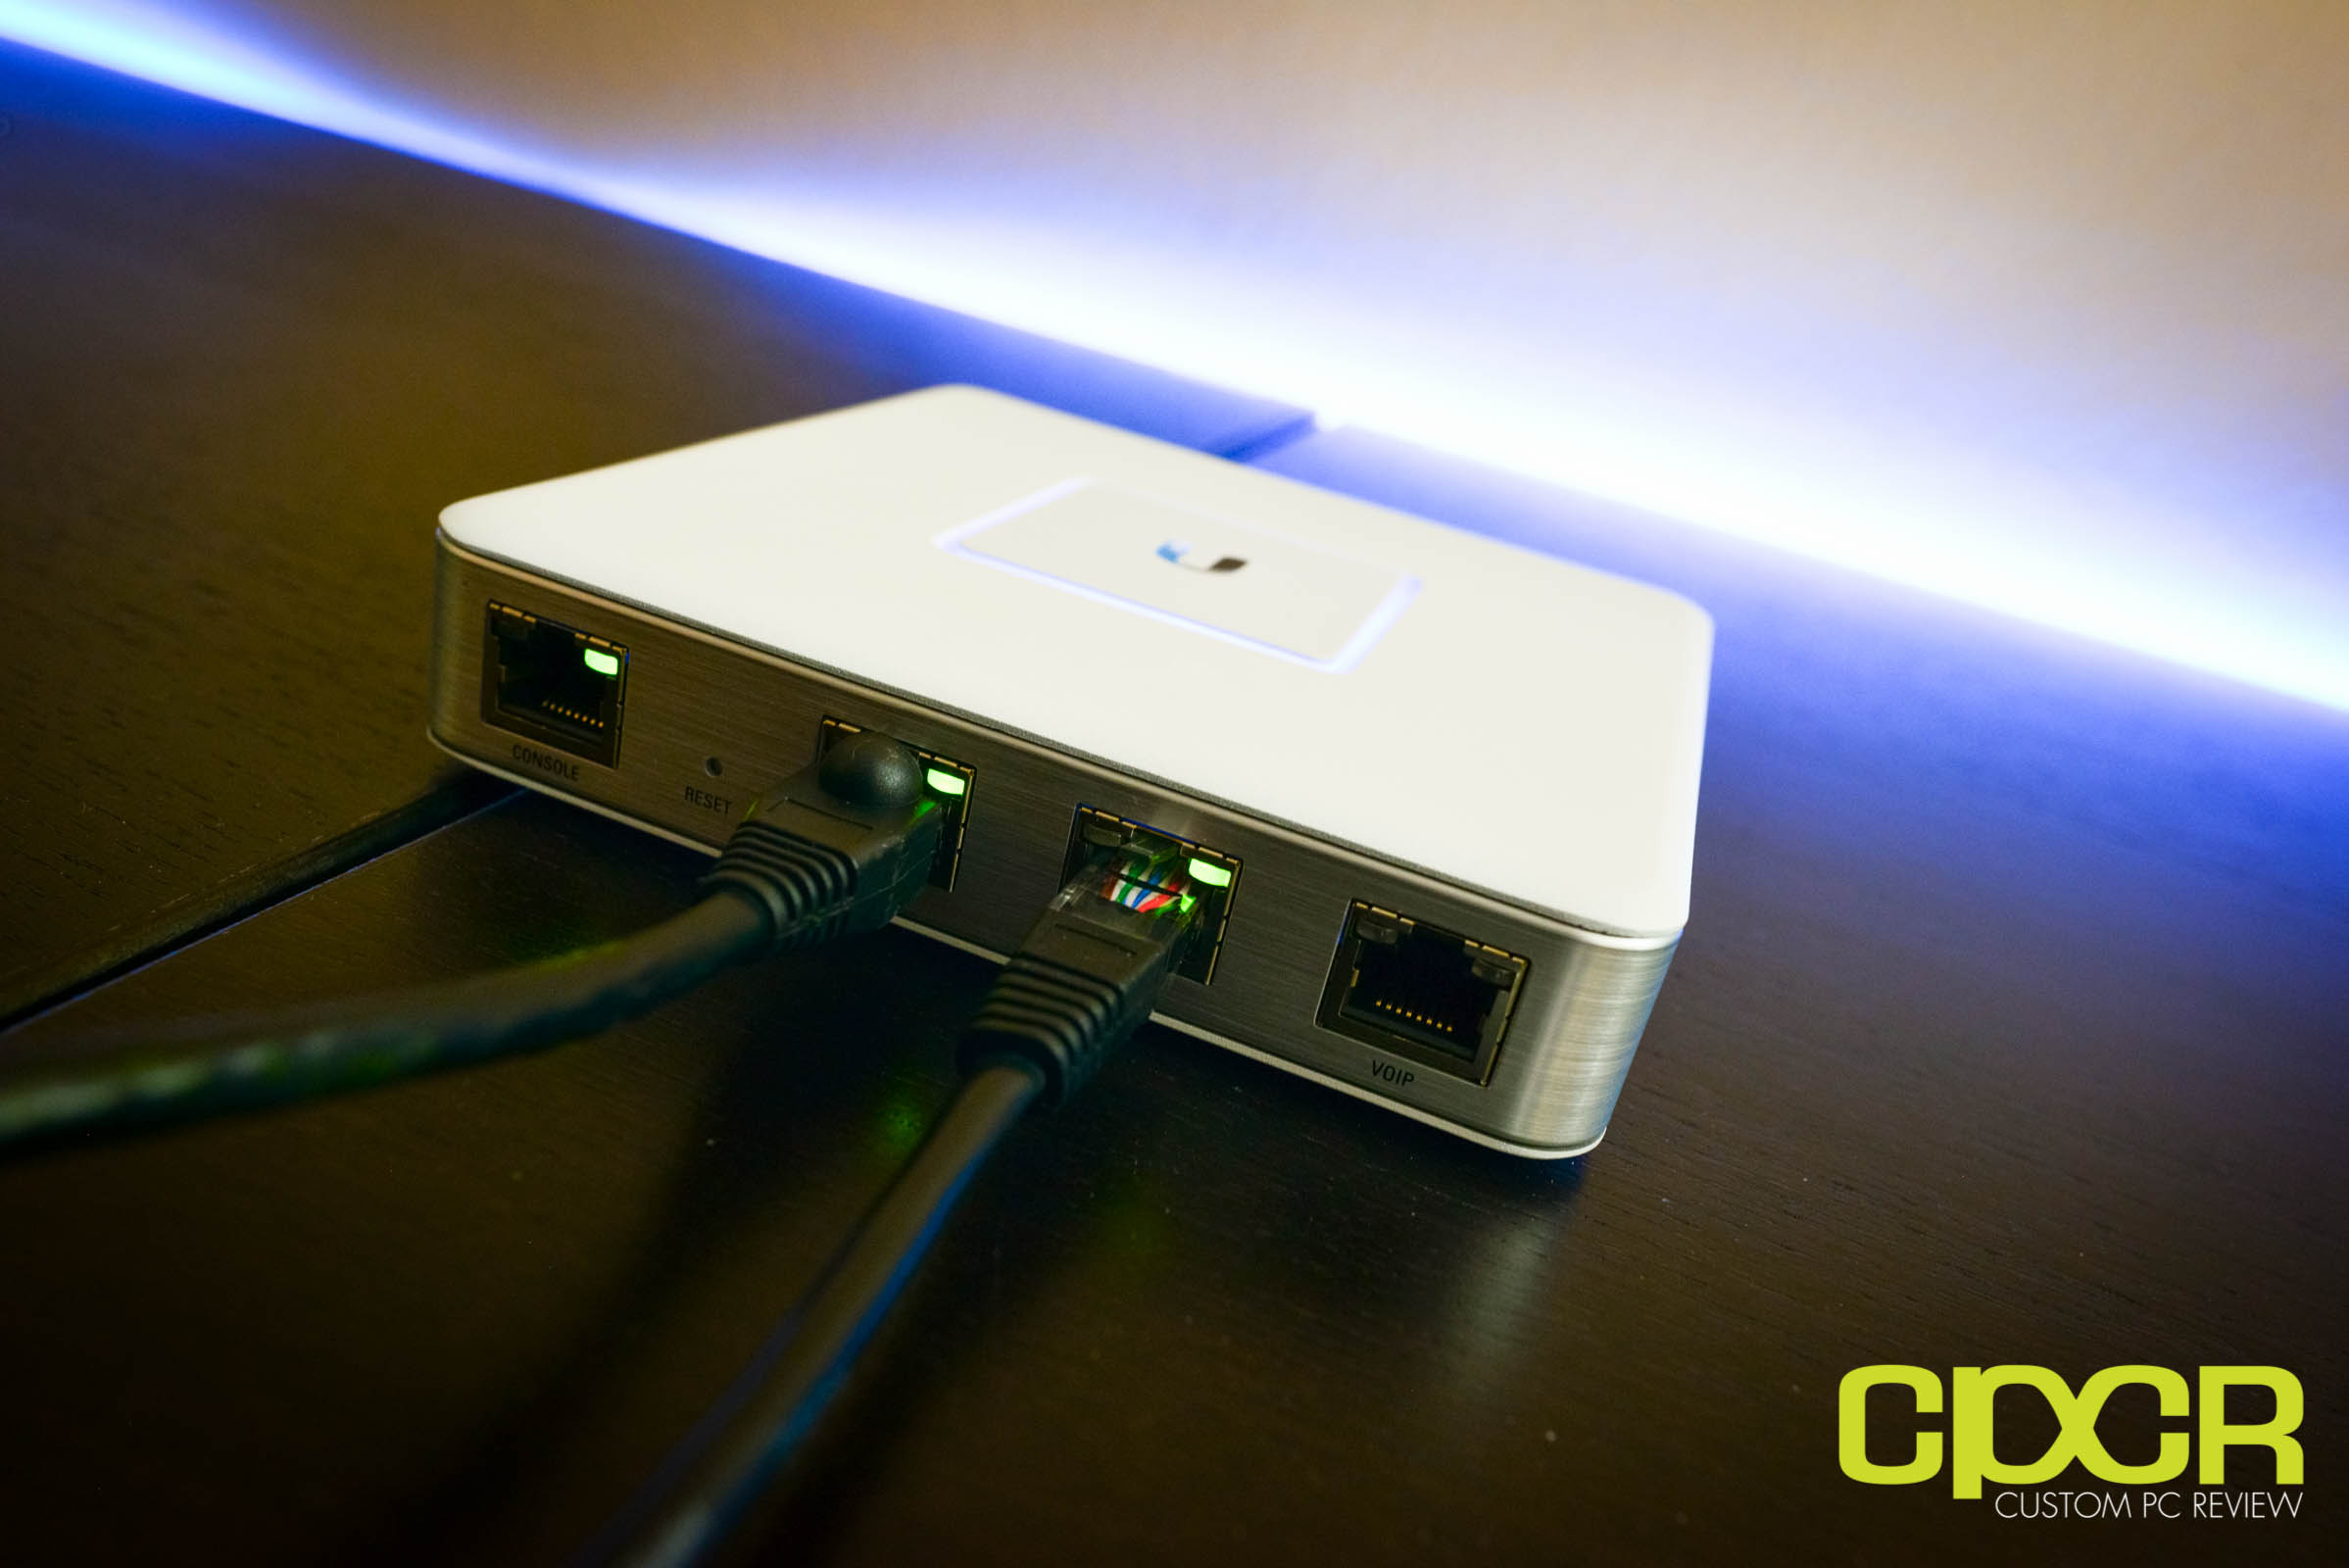 ubiquiti unifi security gateway usg custom pc review 9?w=797&h=532&crop&ssl=1 review ubiquiti unifi security gateway (usg) custom pc review  at reclaimingppi.co